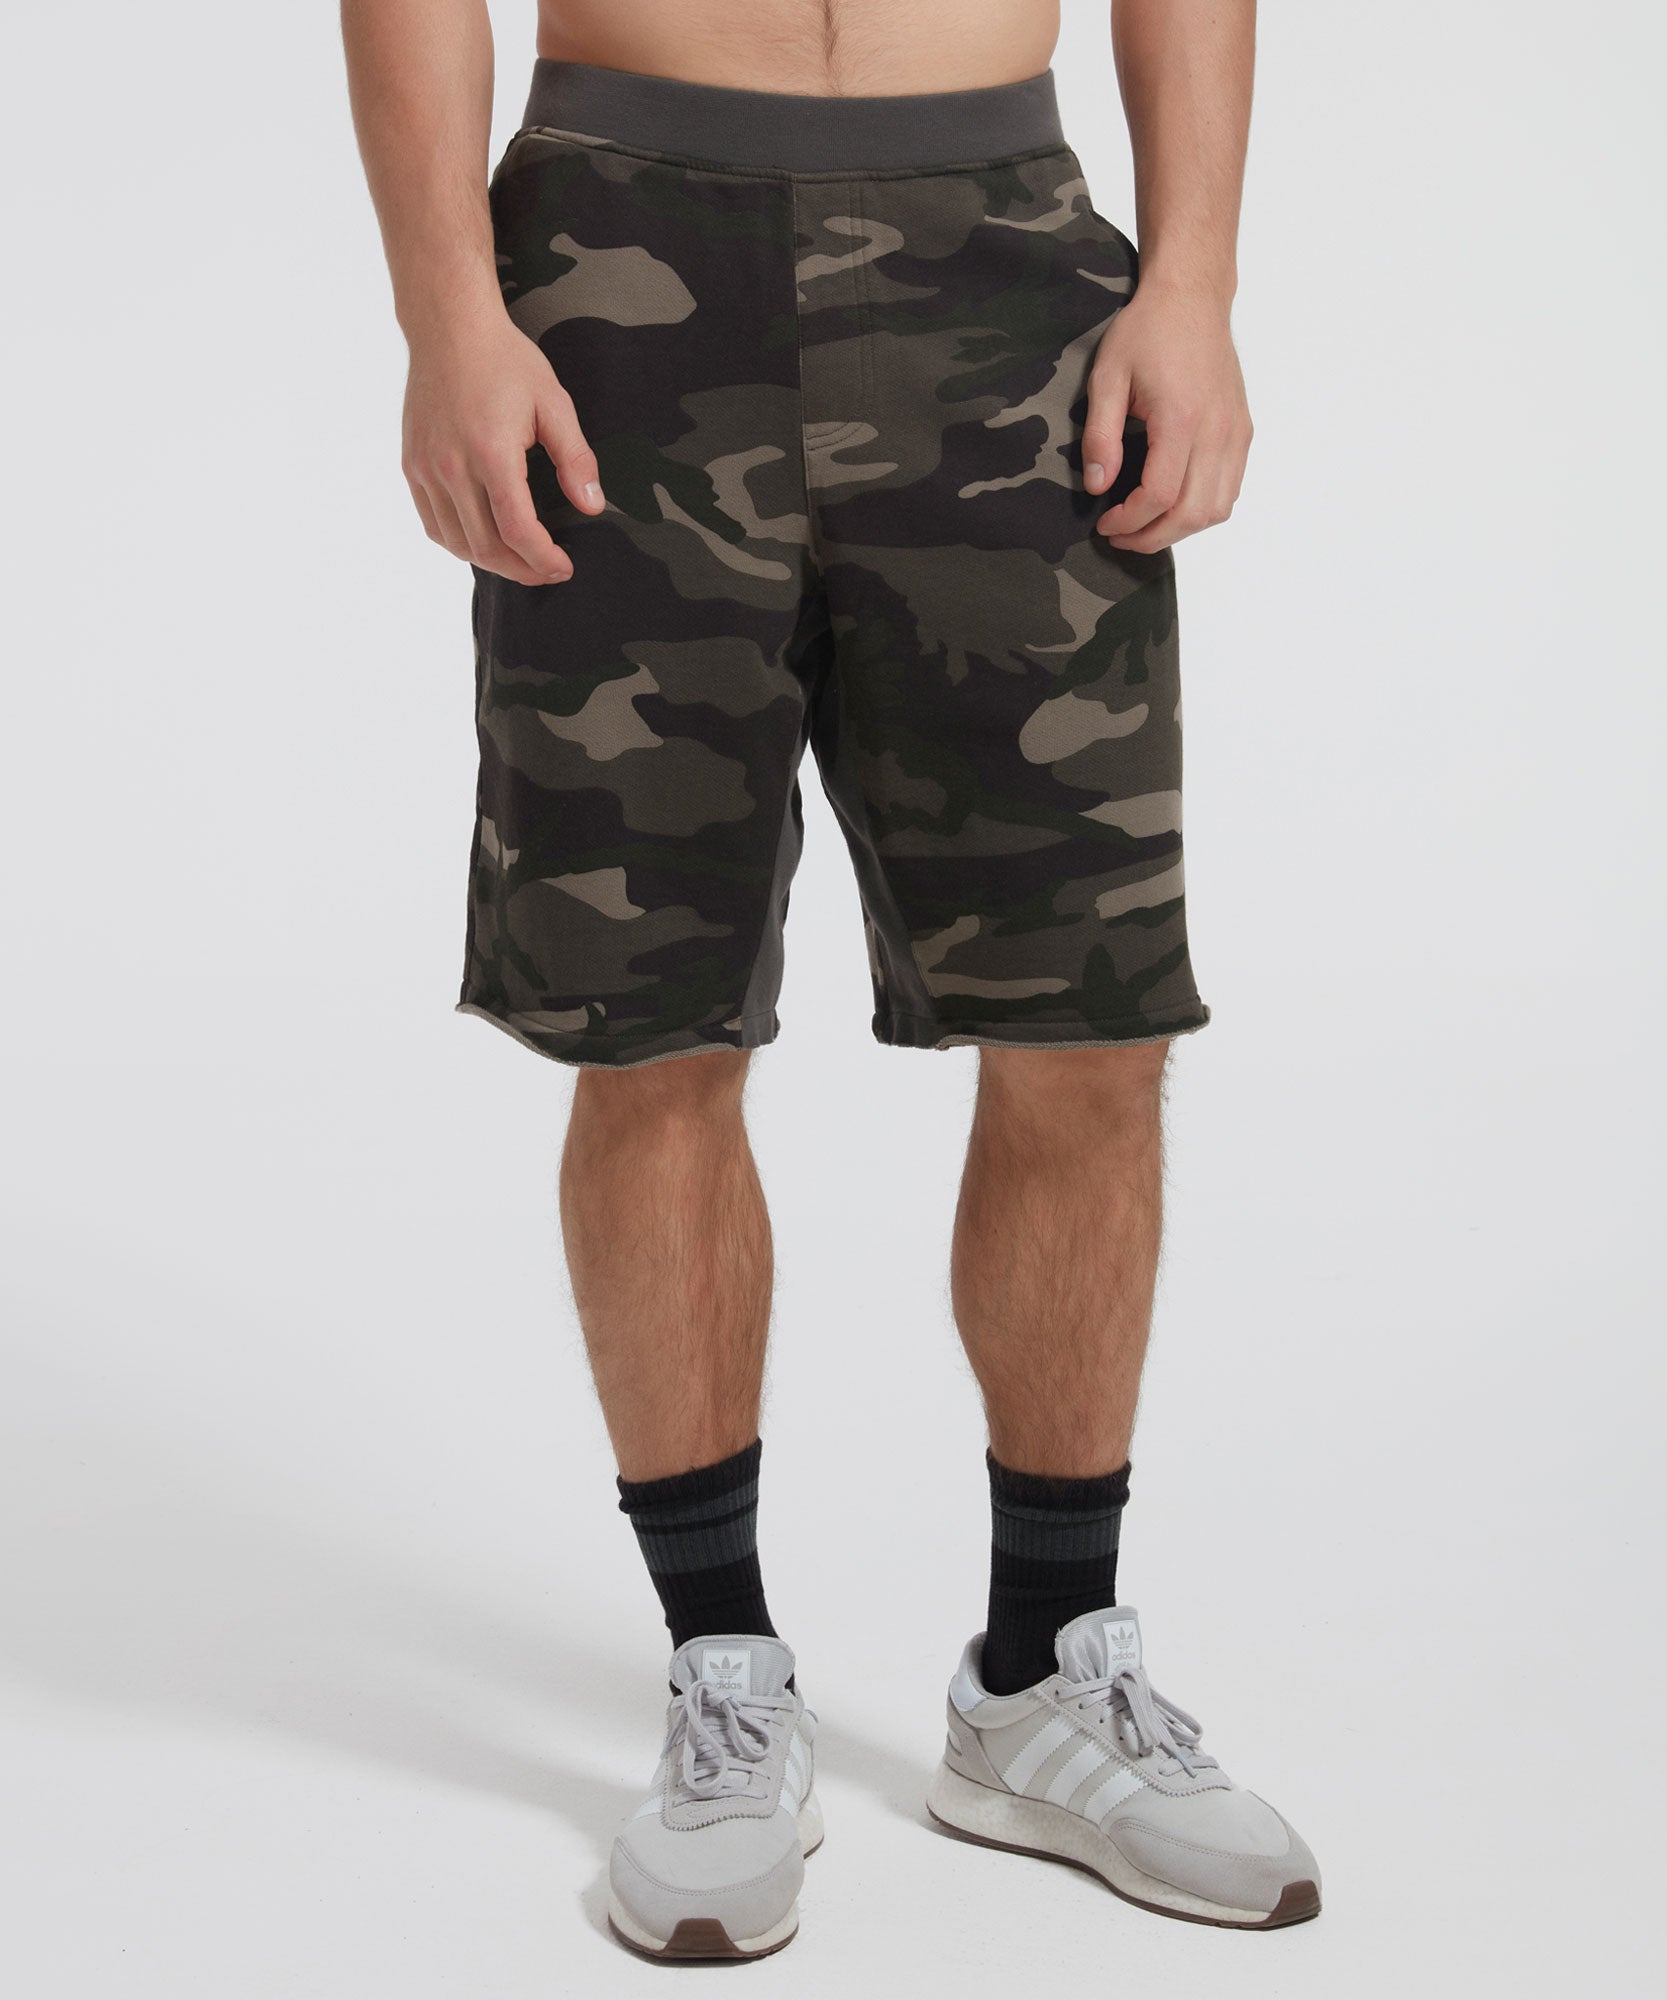 Jungle Camo French Terry Pull-On Shorts - Men's Luxe Cotton Loungewear by ATM Anthony Thomas Melillo